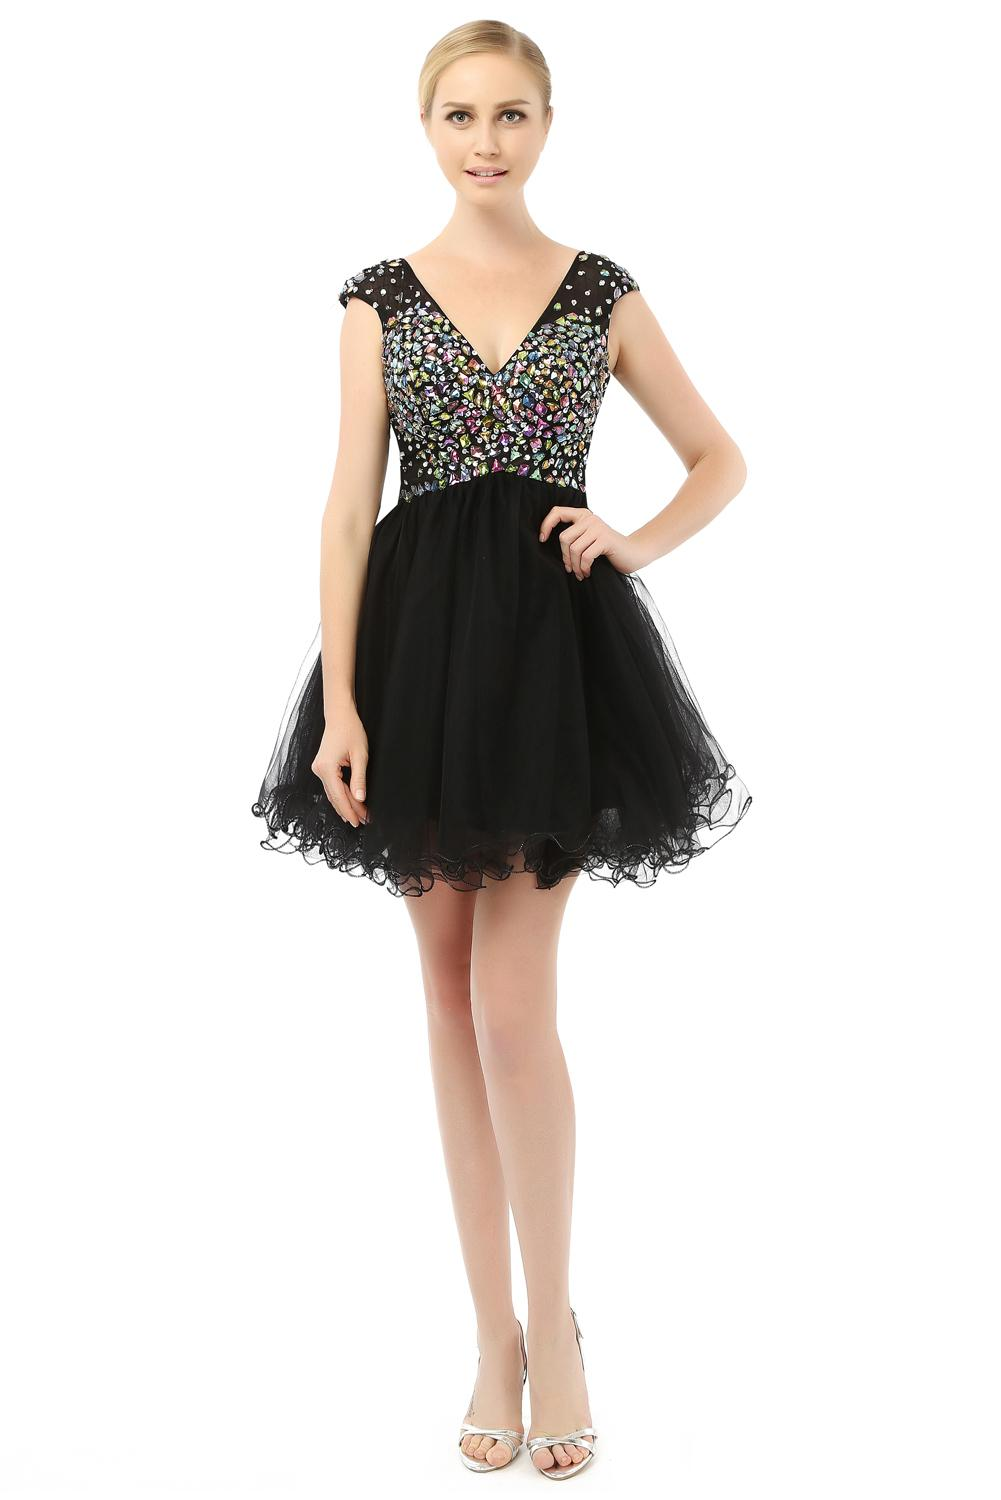 Groß Short Black Cocktail Dresses Under 100 Bilder - Brautkleider ...